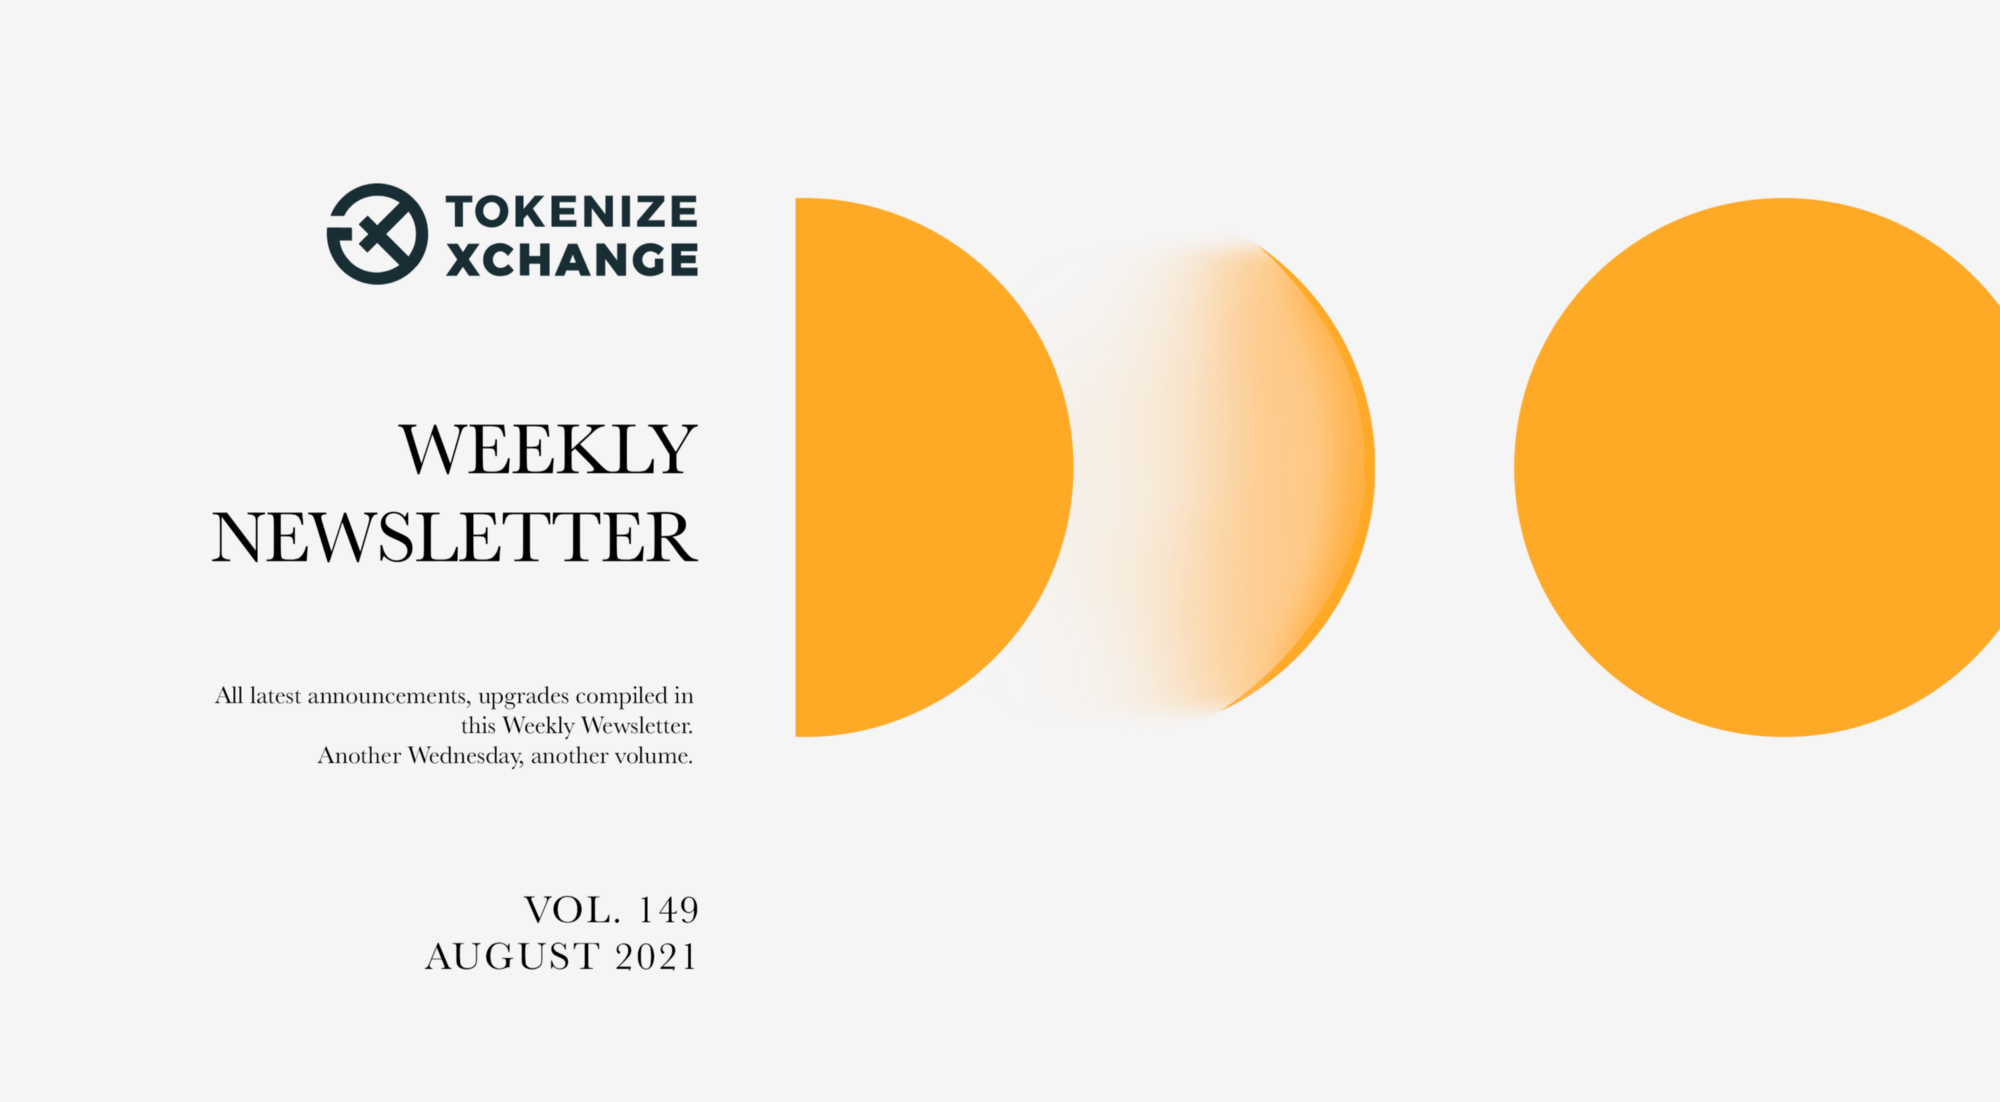 The Newsletter by Tokenize Xchange (Vol.149| Aug 2021)